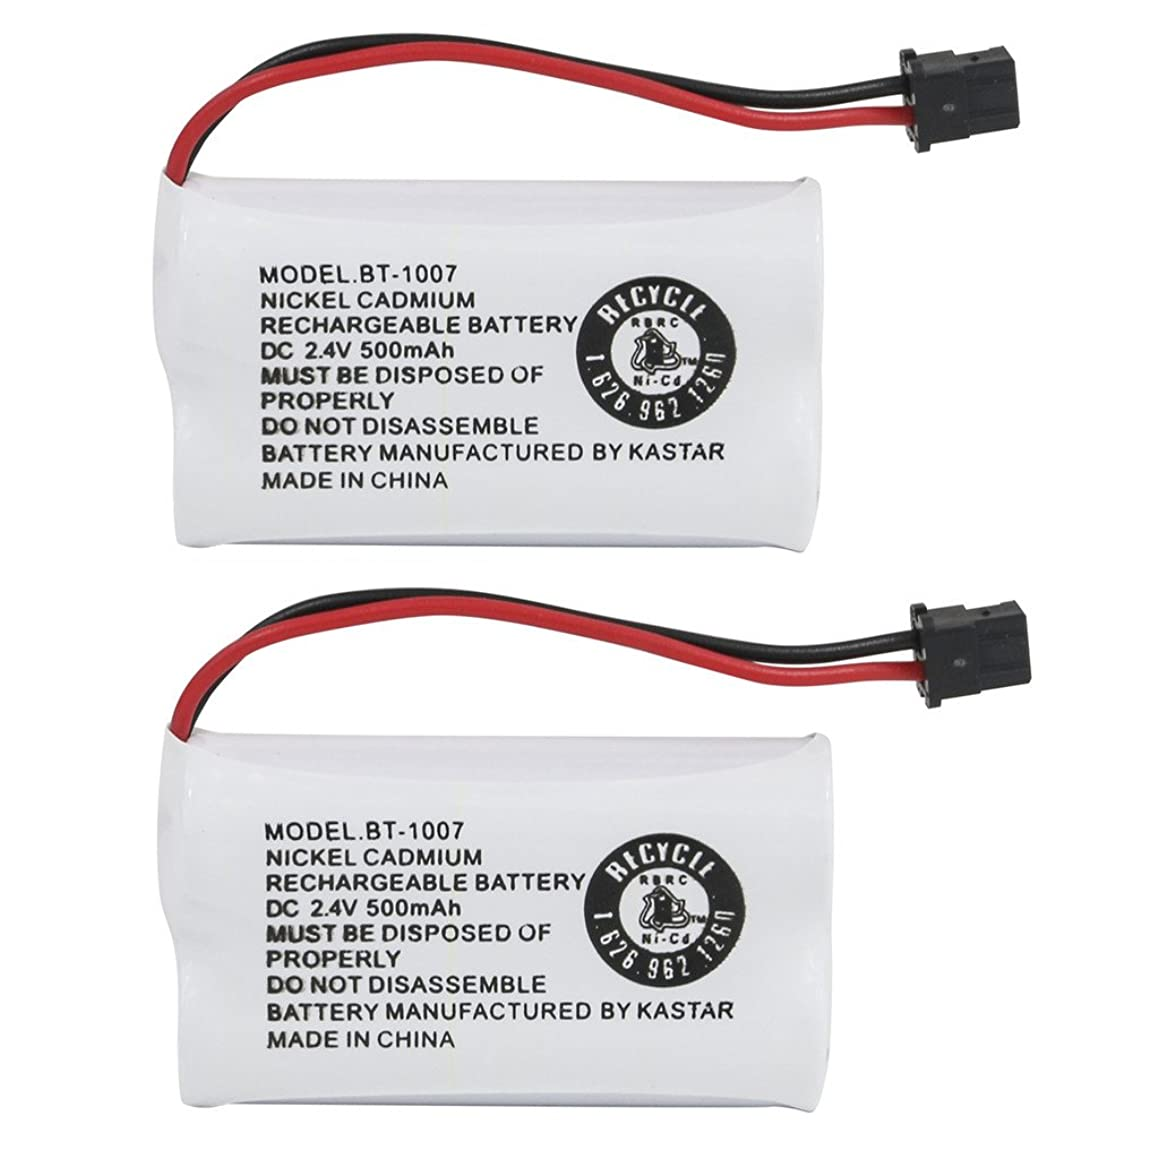 Kastar 2-PACK BBTY0651101 model BT1007 Cordless Phone Battery for Uniden BT-1007 BT-1015, CEZAI2998 DECT1340 DECT1363 DECT1363BK DECT1363-2 DECT1480 Series DECT1560 DECT1580 DECT1588 EZAI2997 EZI2996